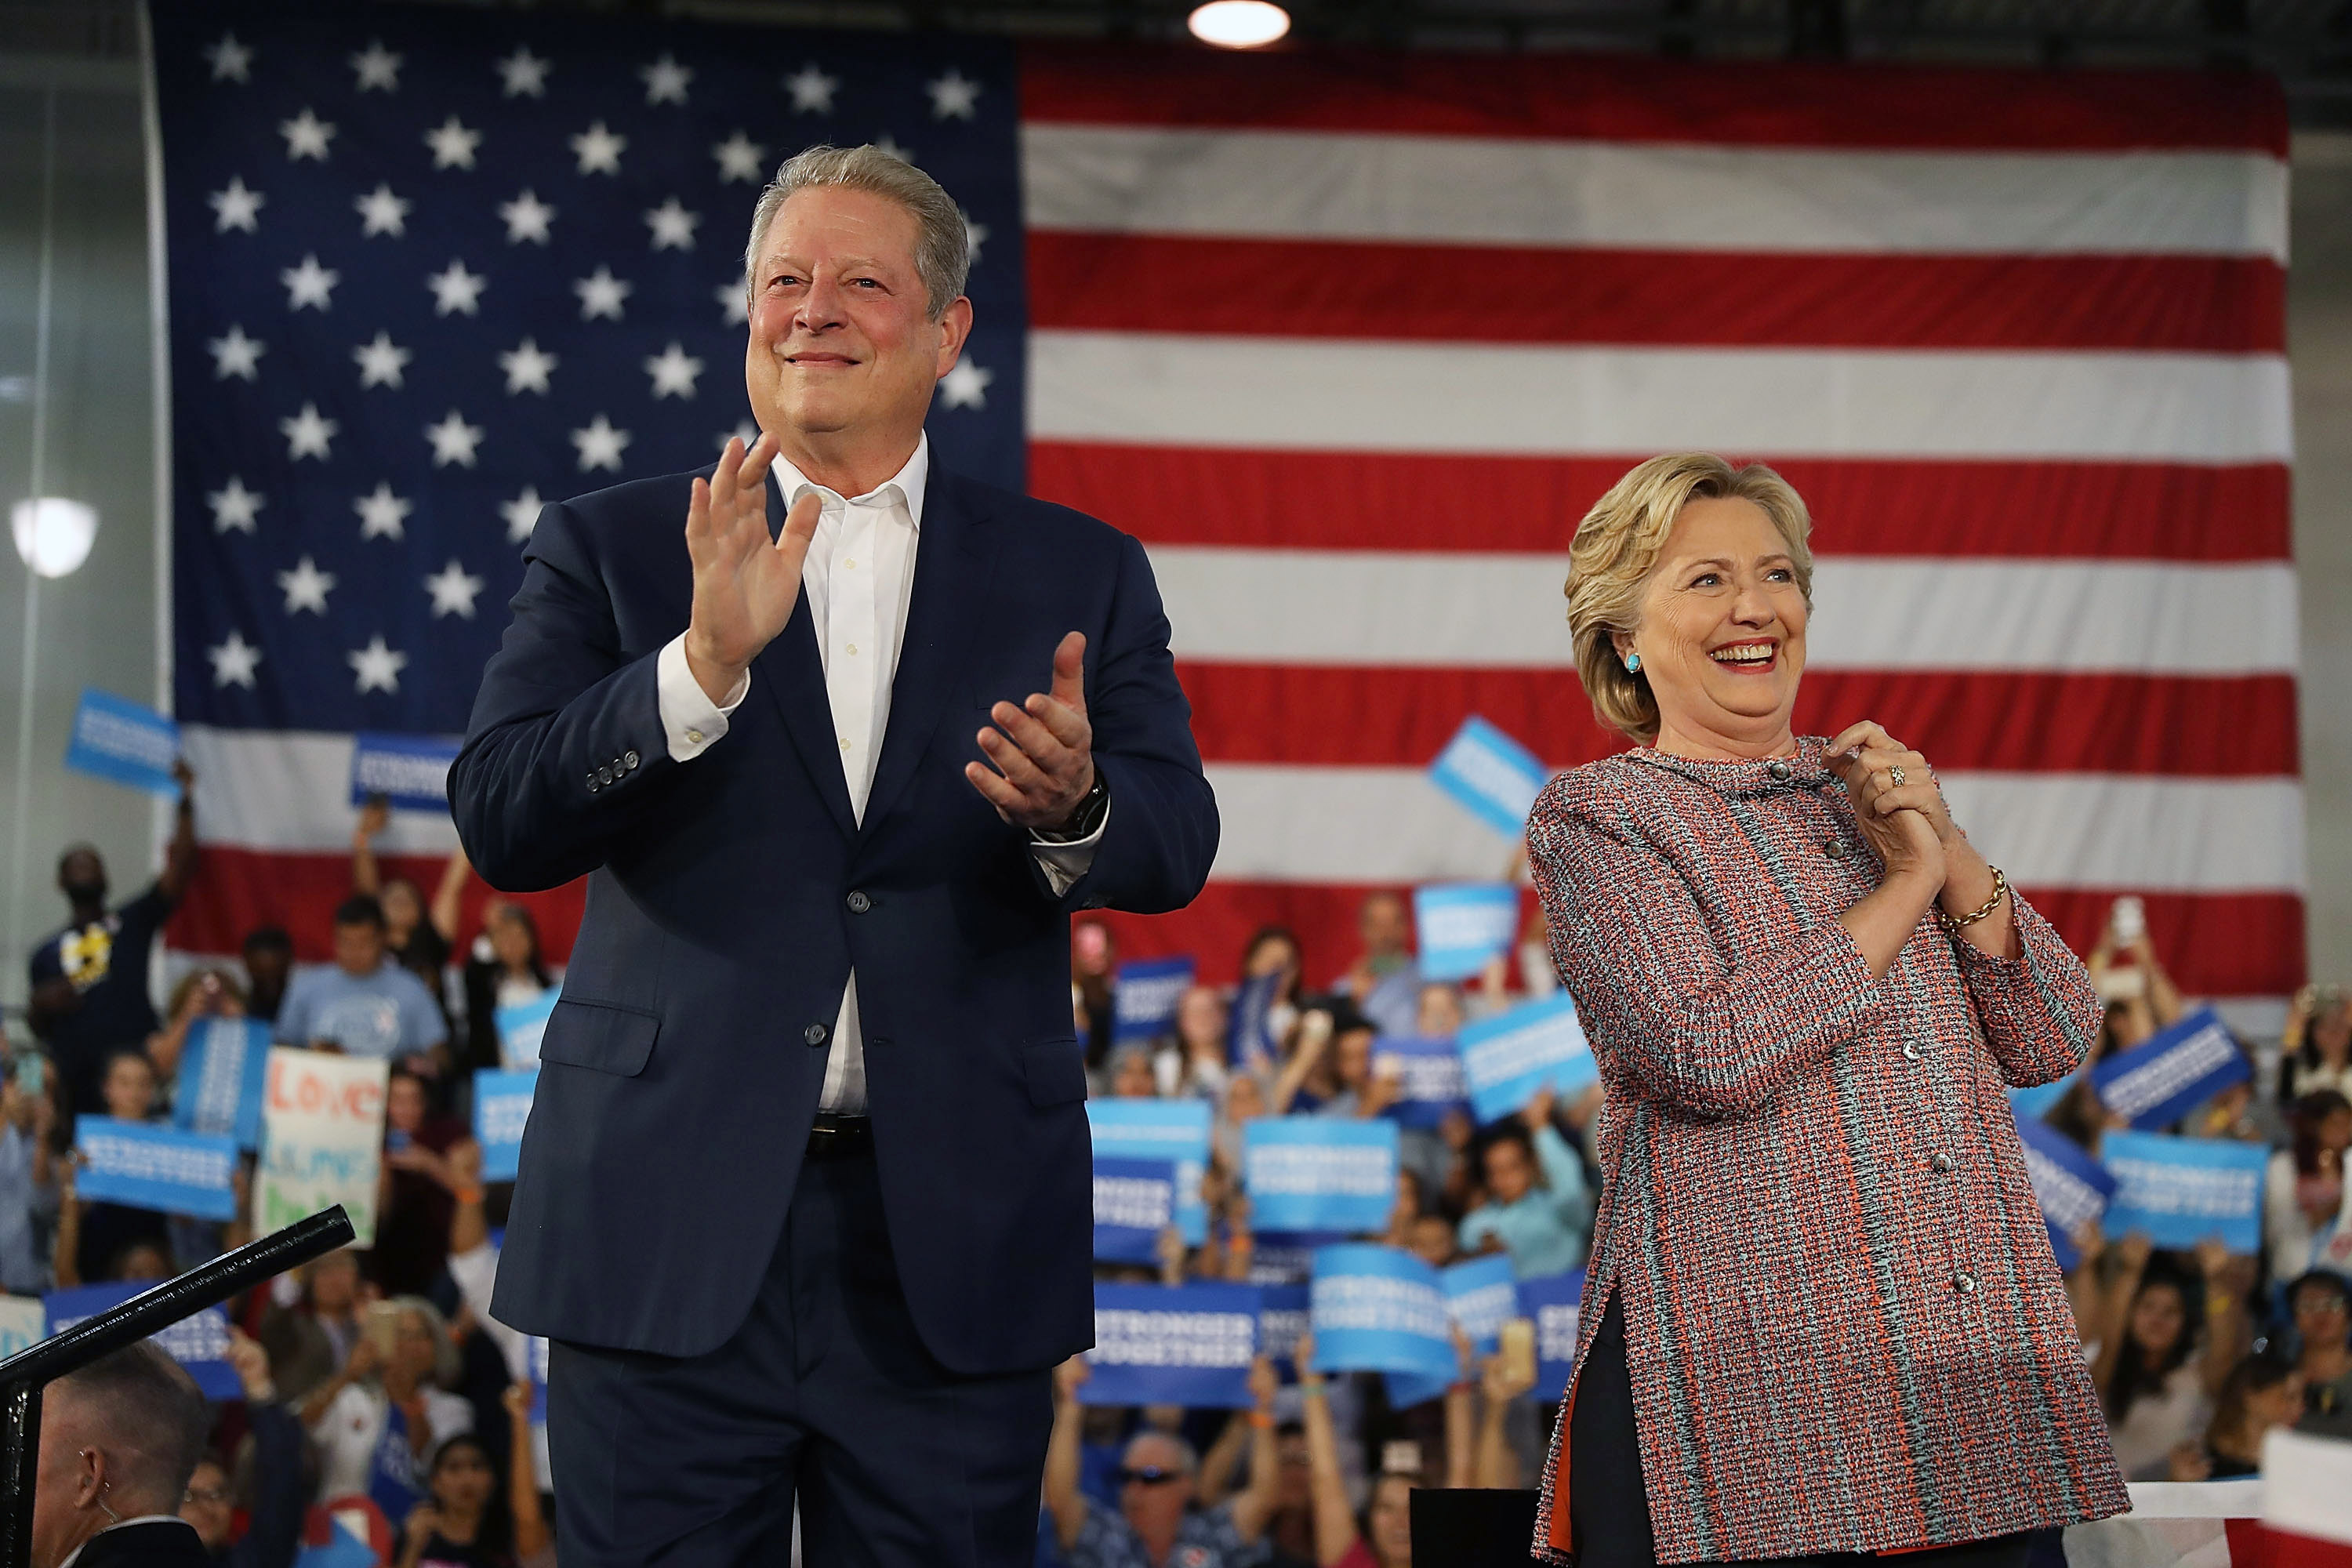 Democratic presidential nominee former Secretary of State Hillary Clinton and former Vice President Al Gore campaign together at the Miami Dade College on Oct. 11. in Miami.